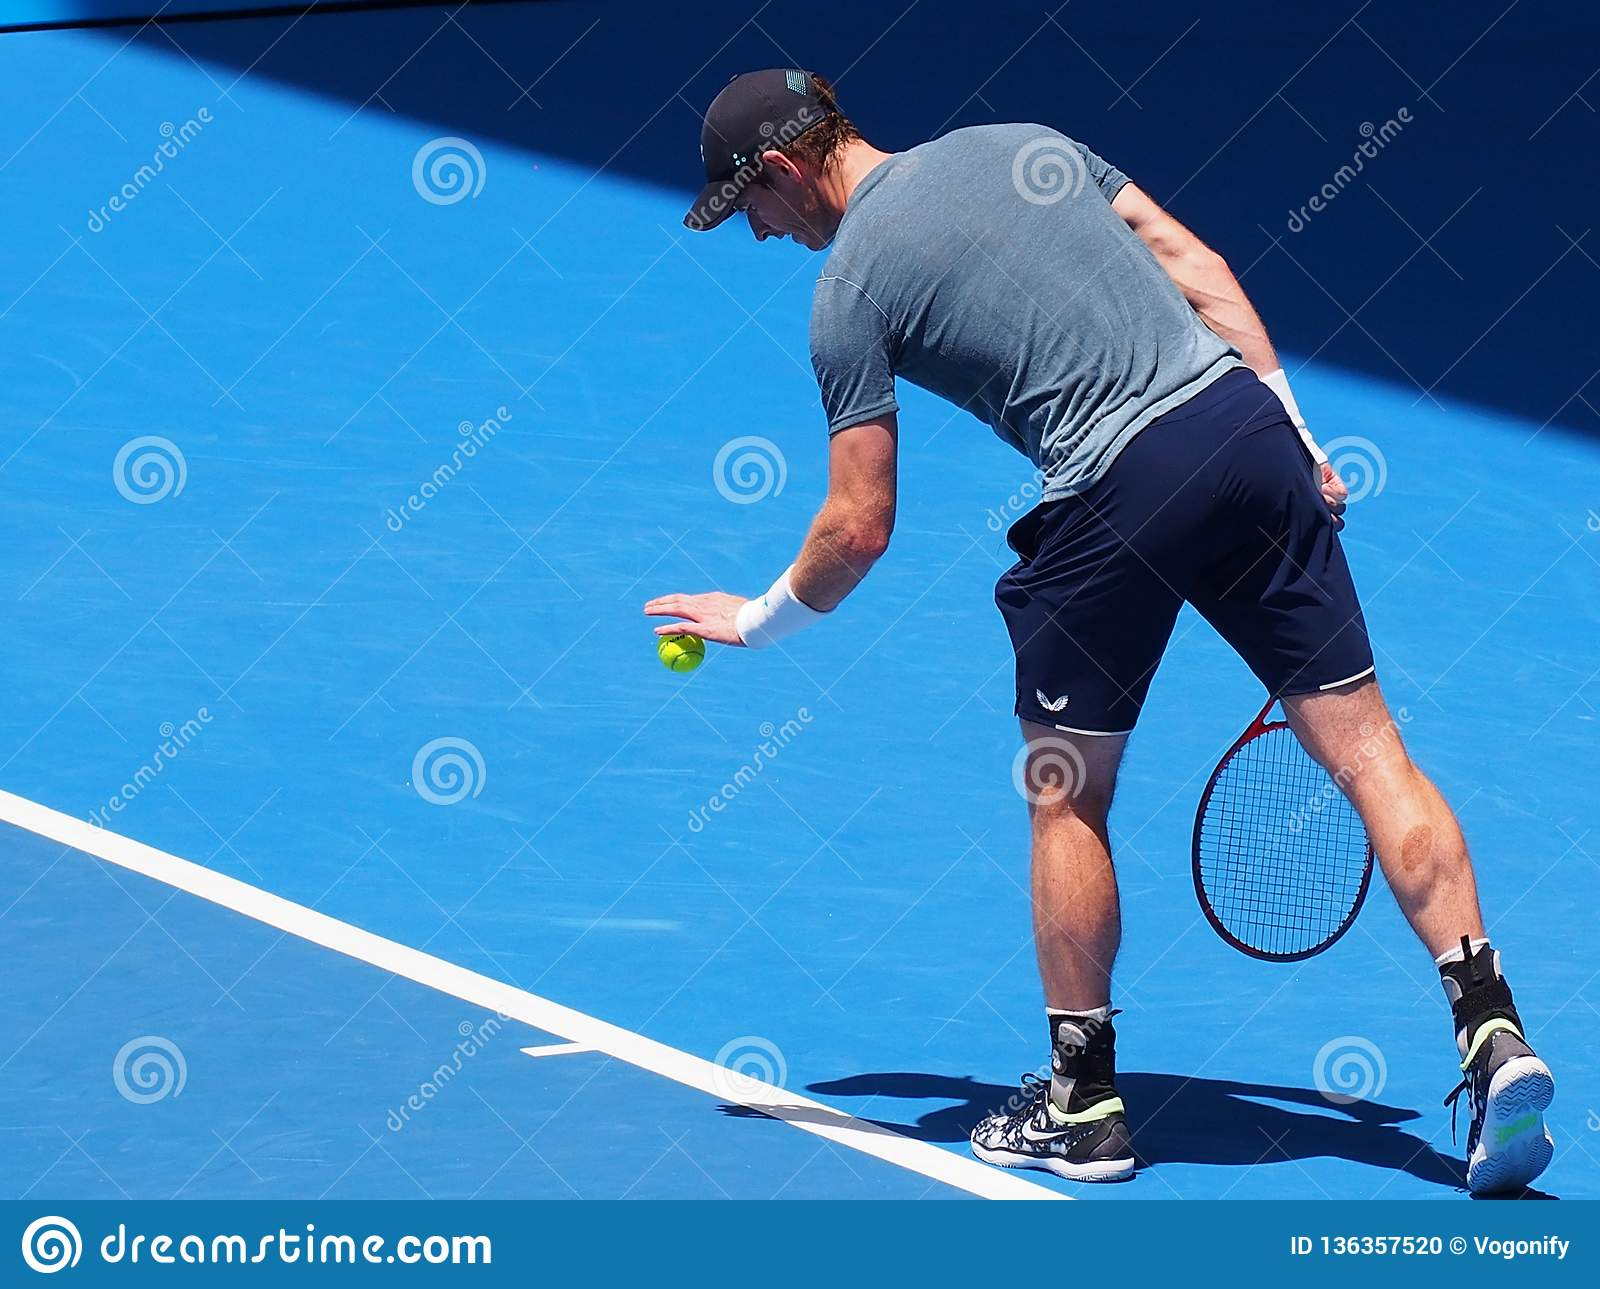 Andy Murray at the Australian Open 2019